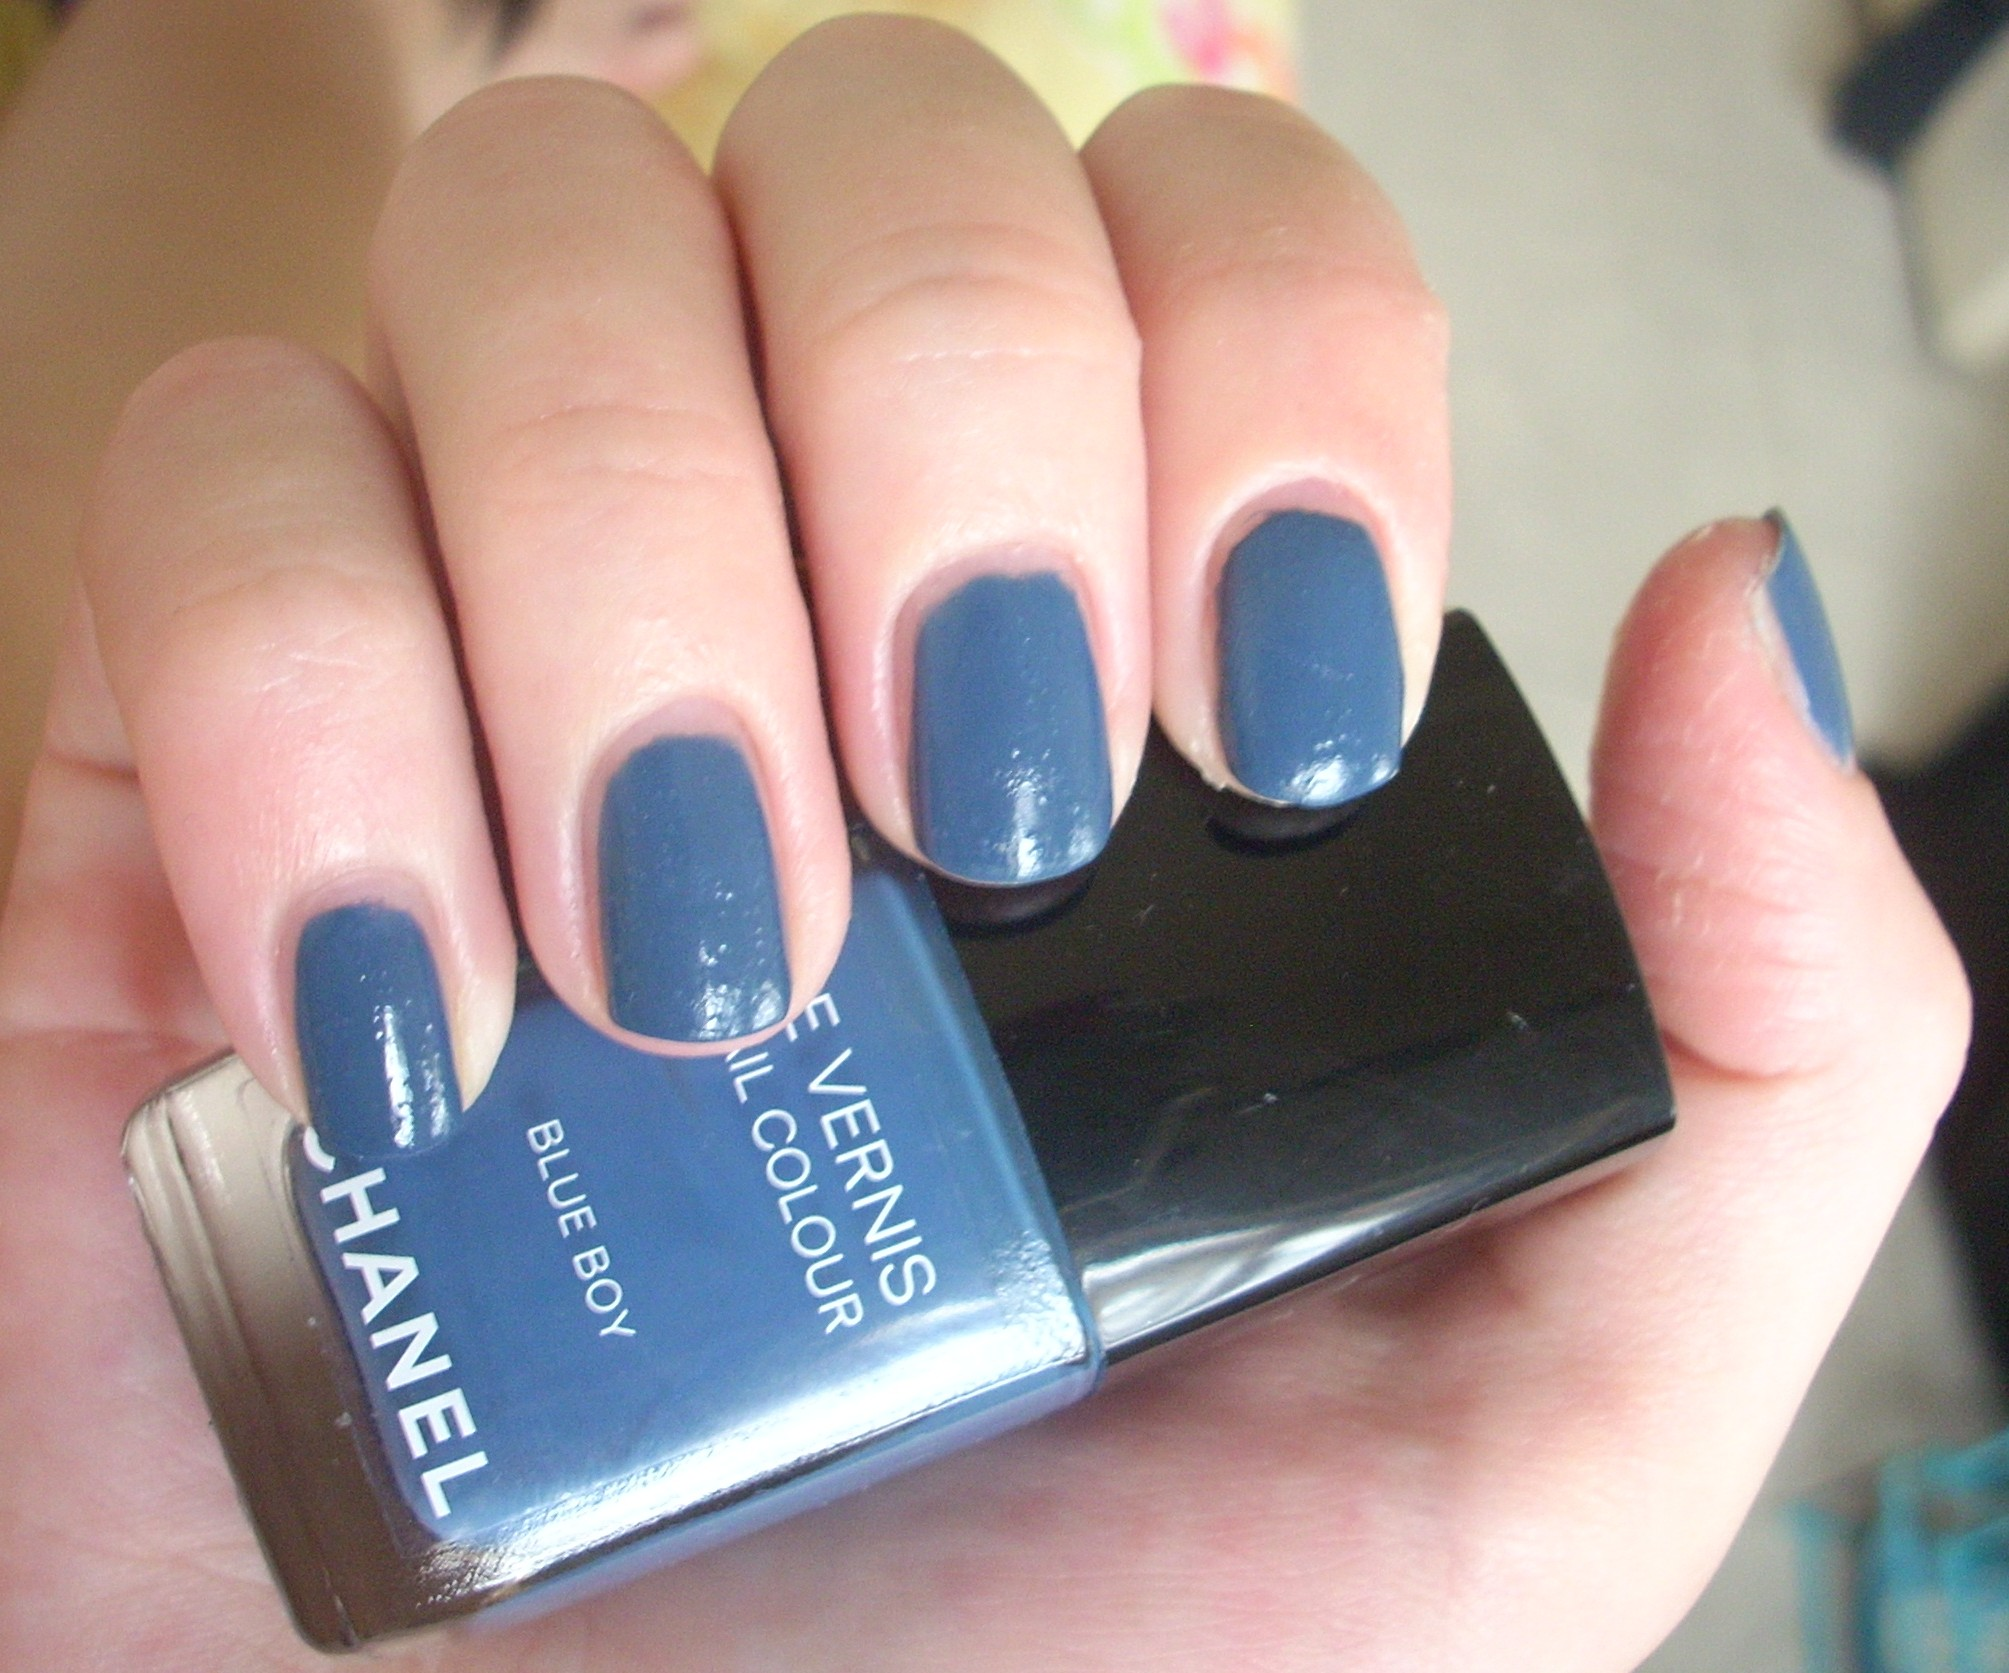 Chanel Blue Boy nail polish review | Through The Looking Glass